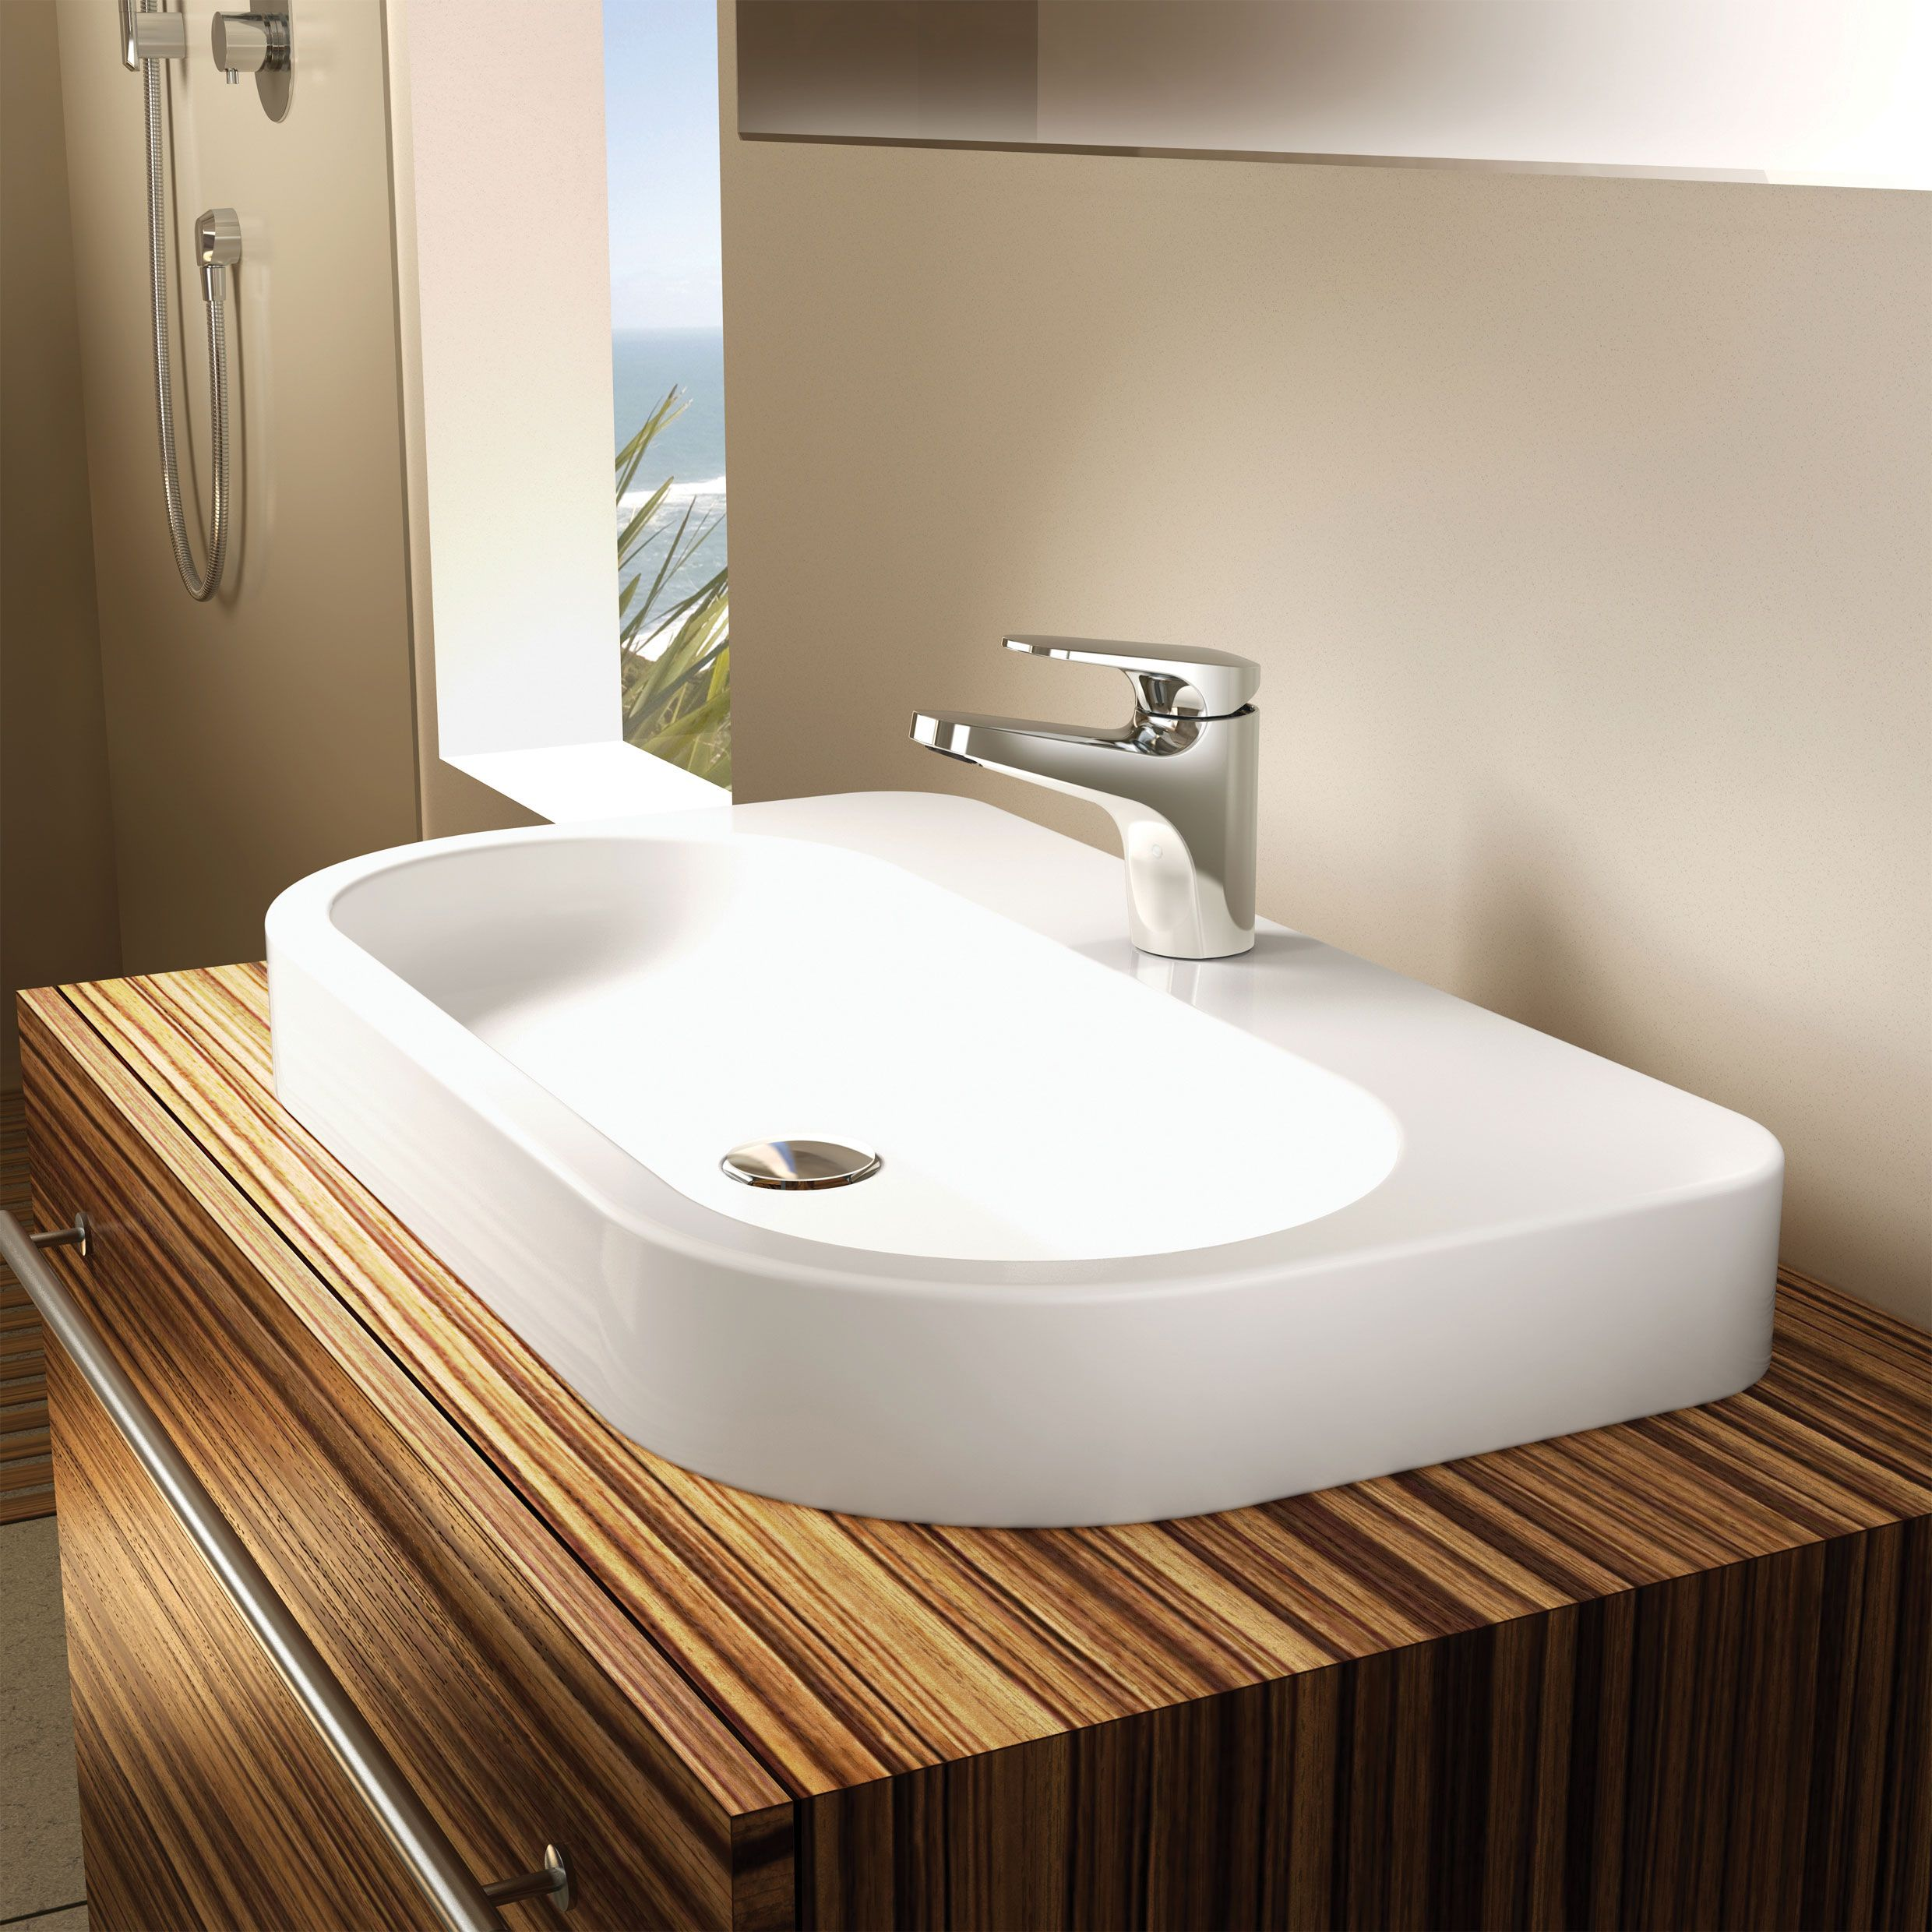 Bathroom Sinks Brisbane kaha basin mixer | methven tapware | pinterest | mixers, basins